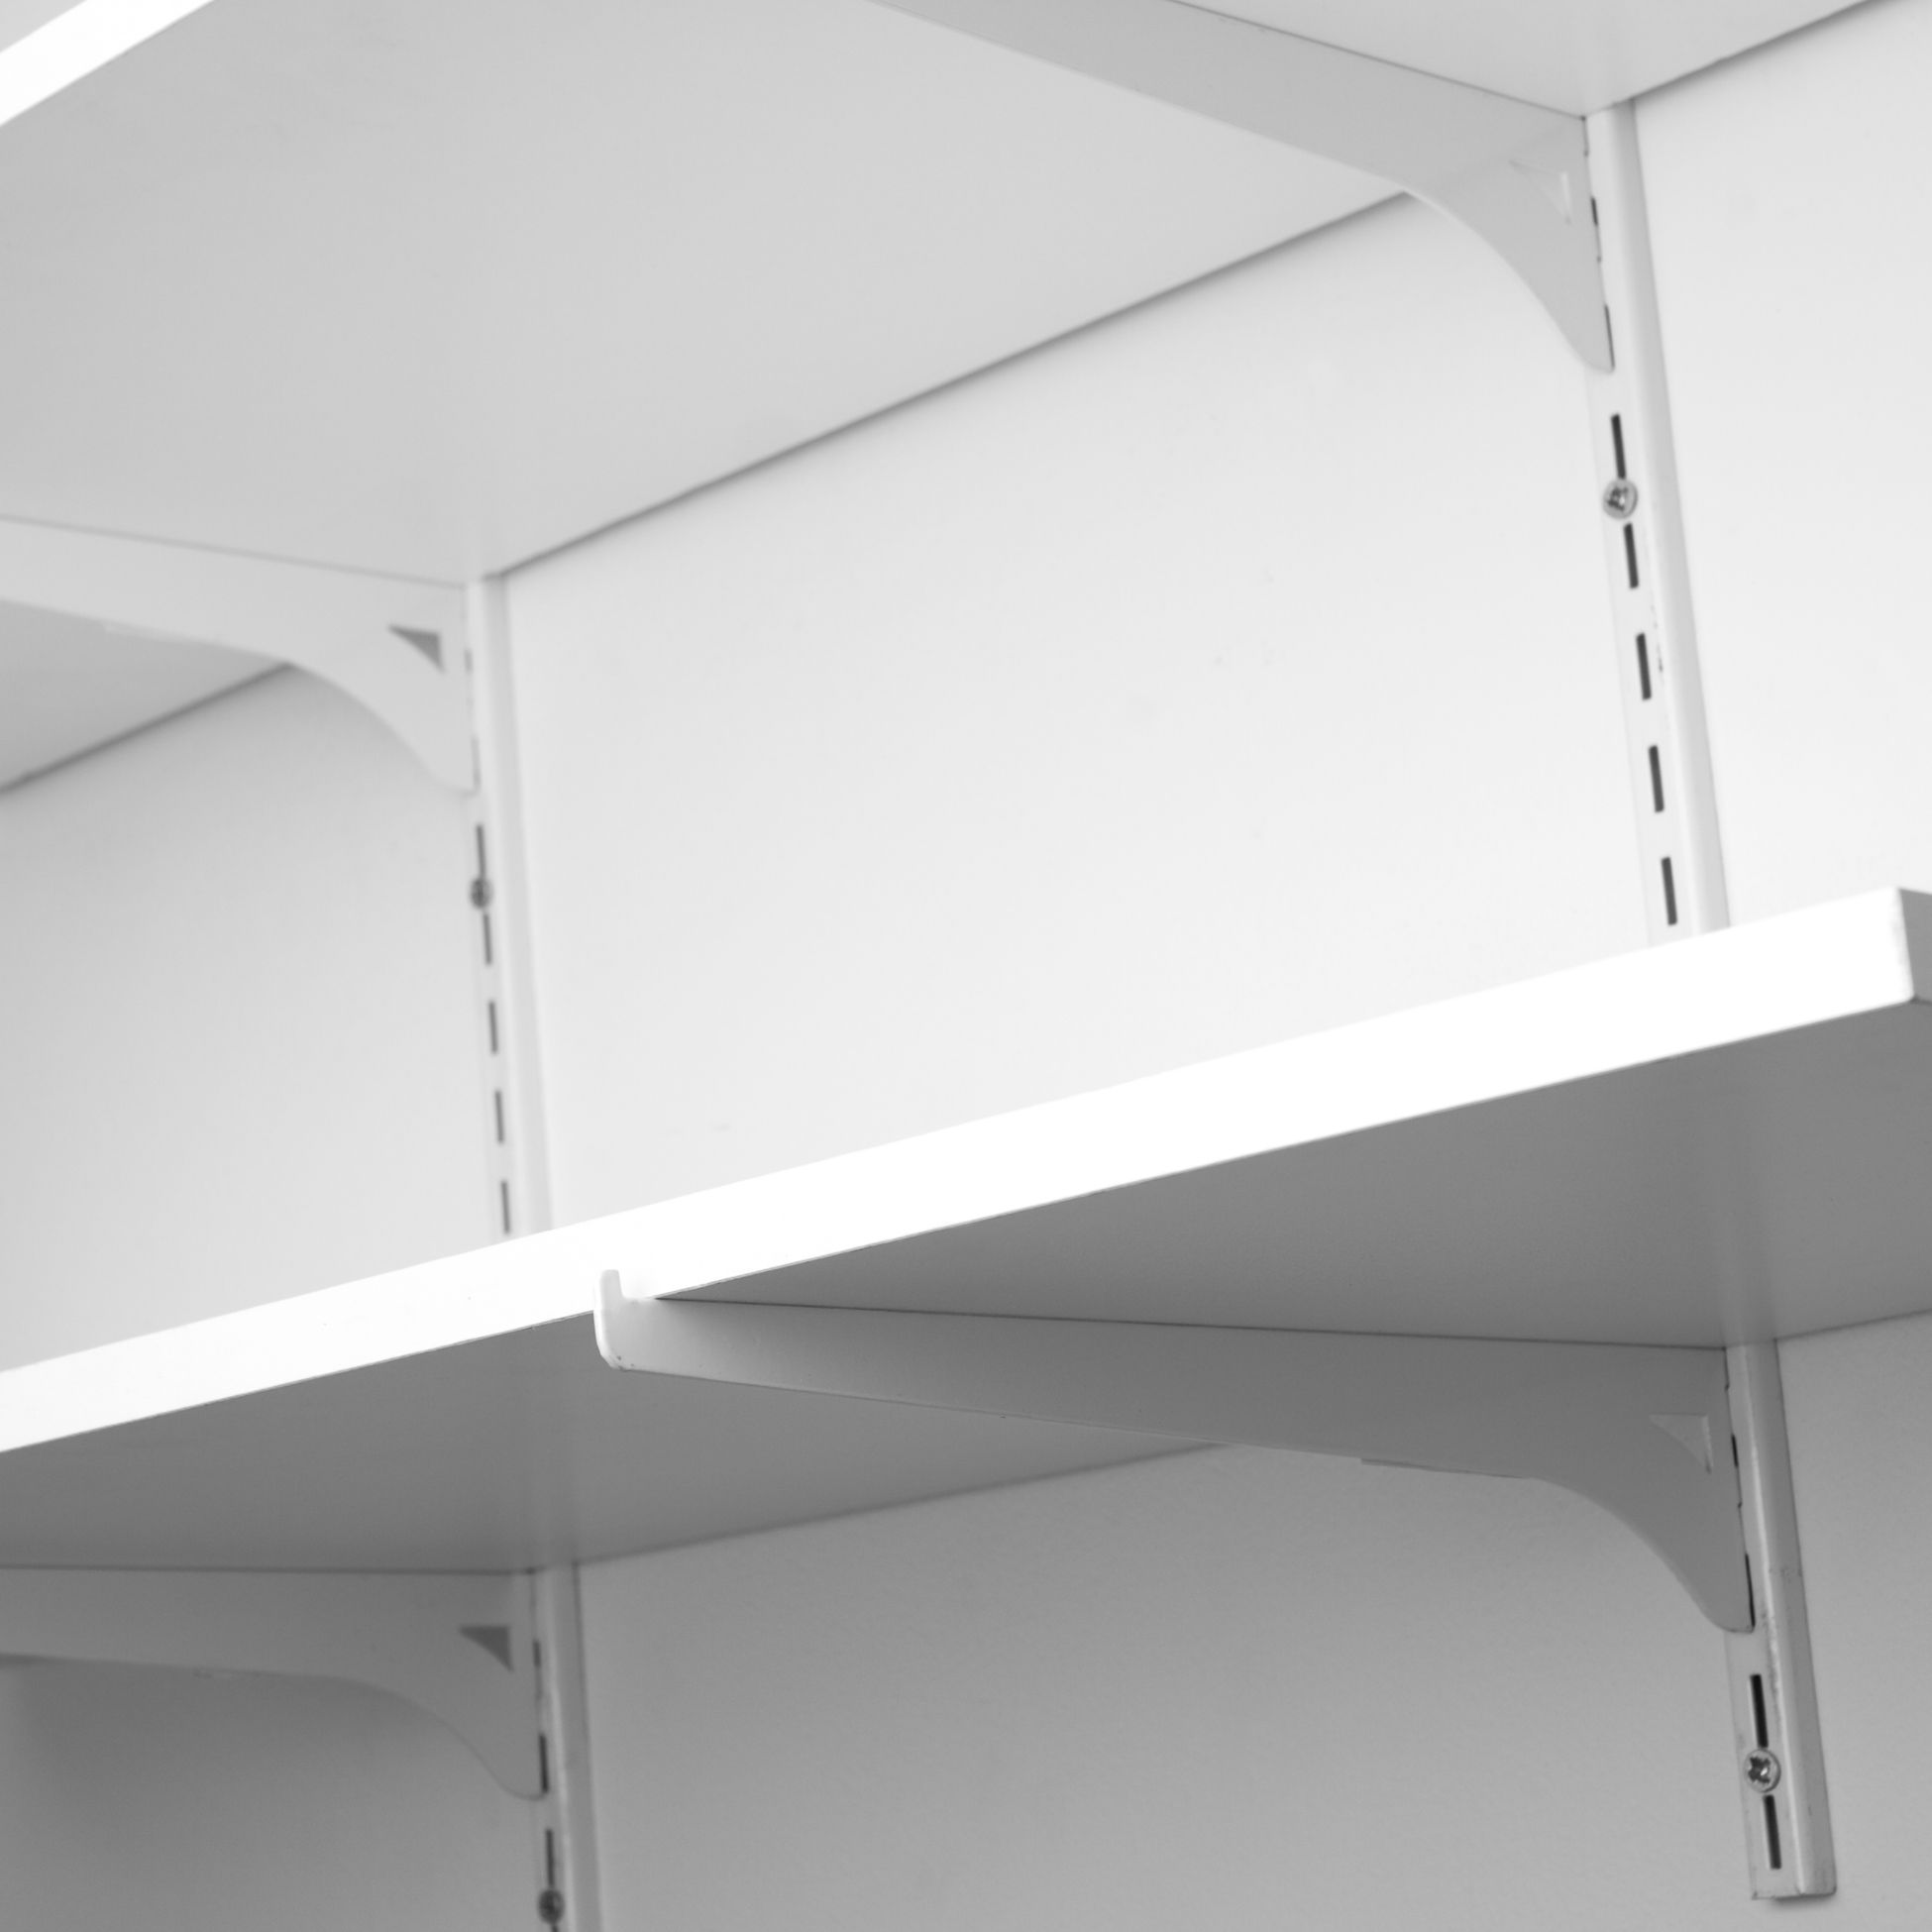 How To Install Wall Shelves Using Standards And Brackets